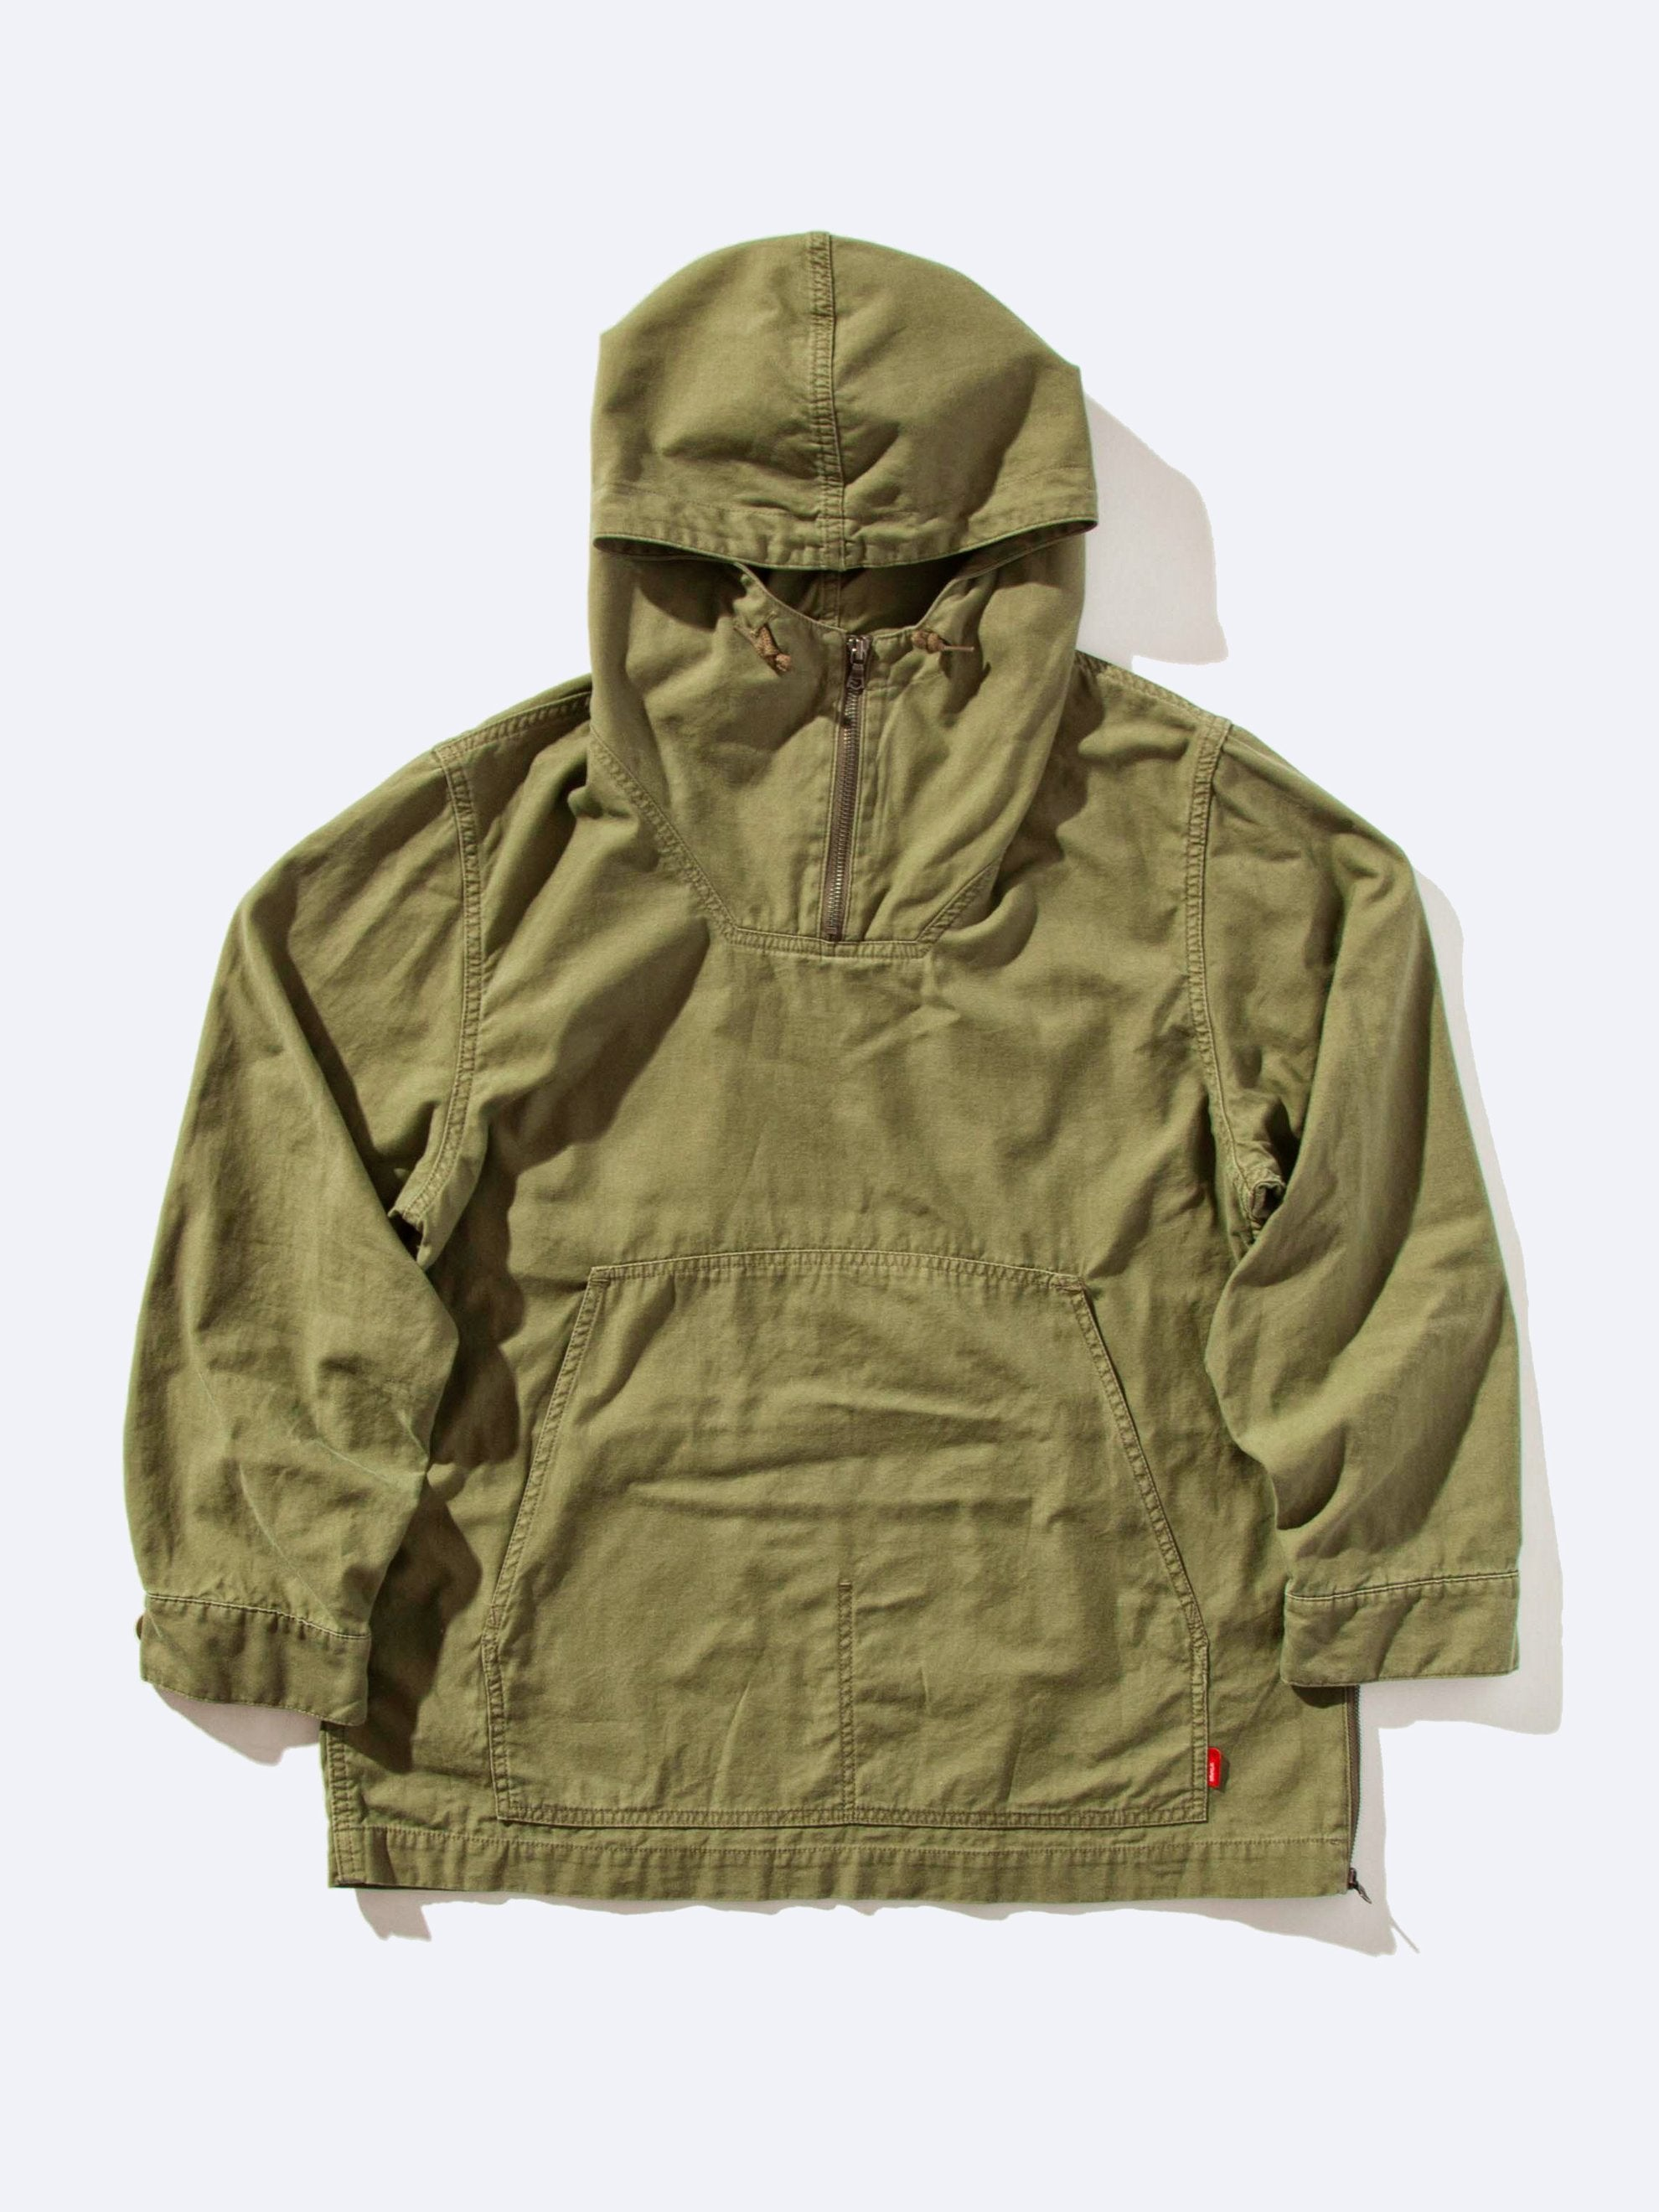 Olive Drab Swamp Jacket 1